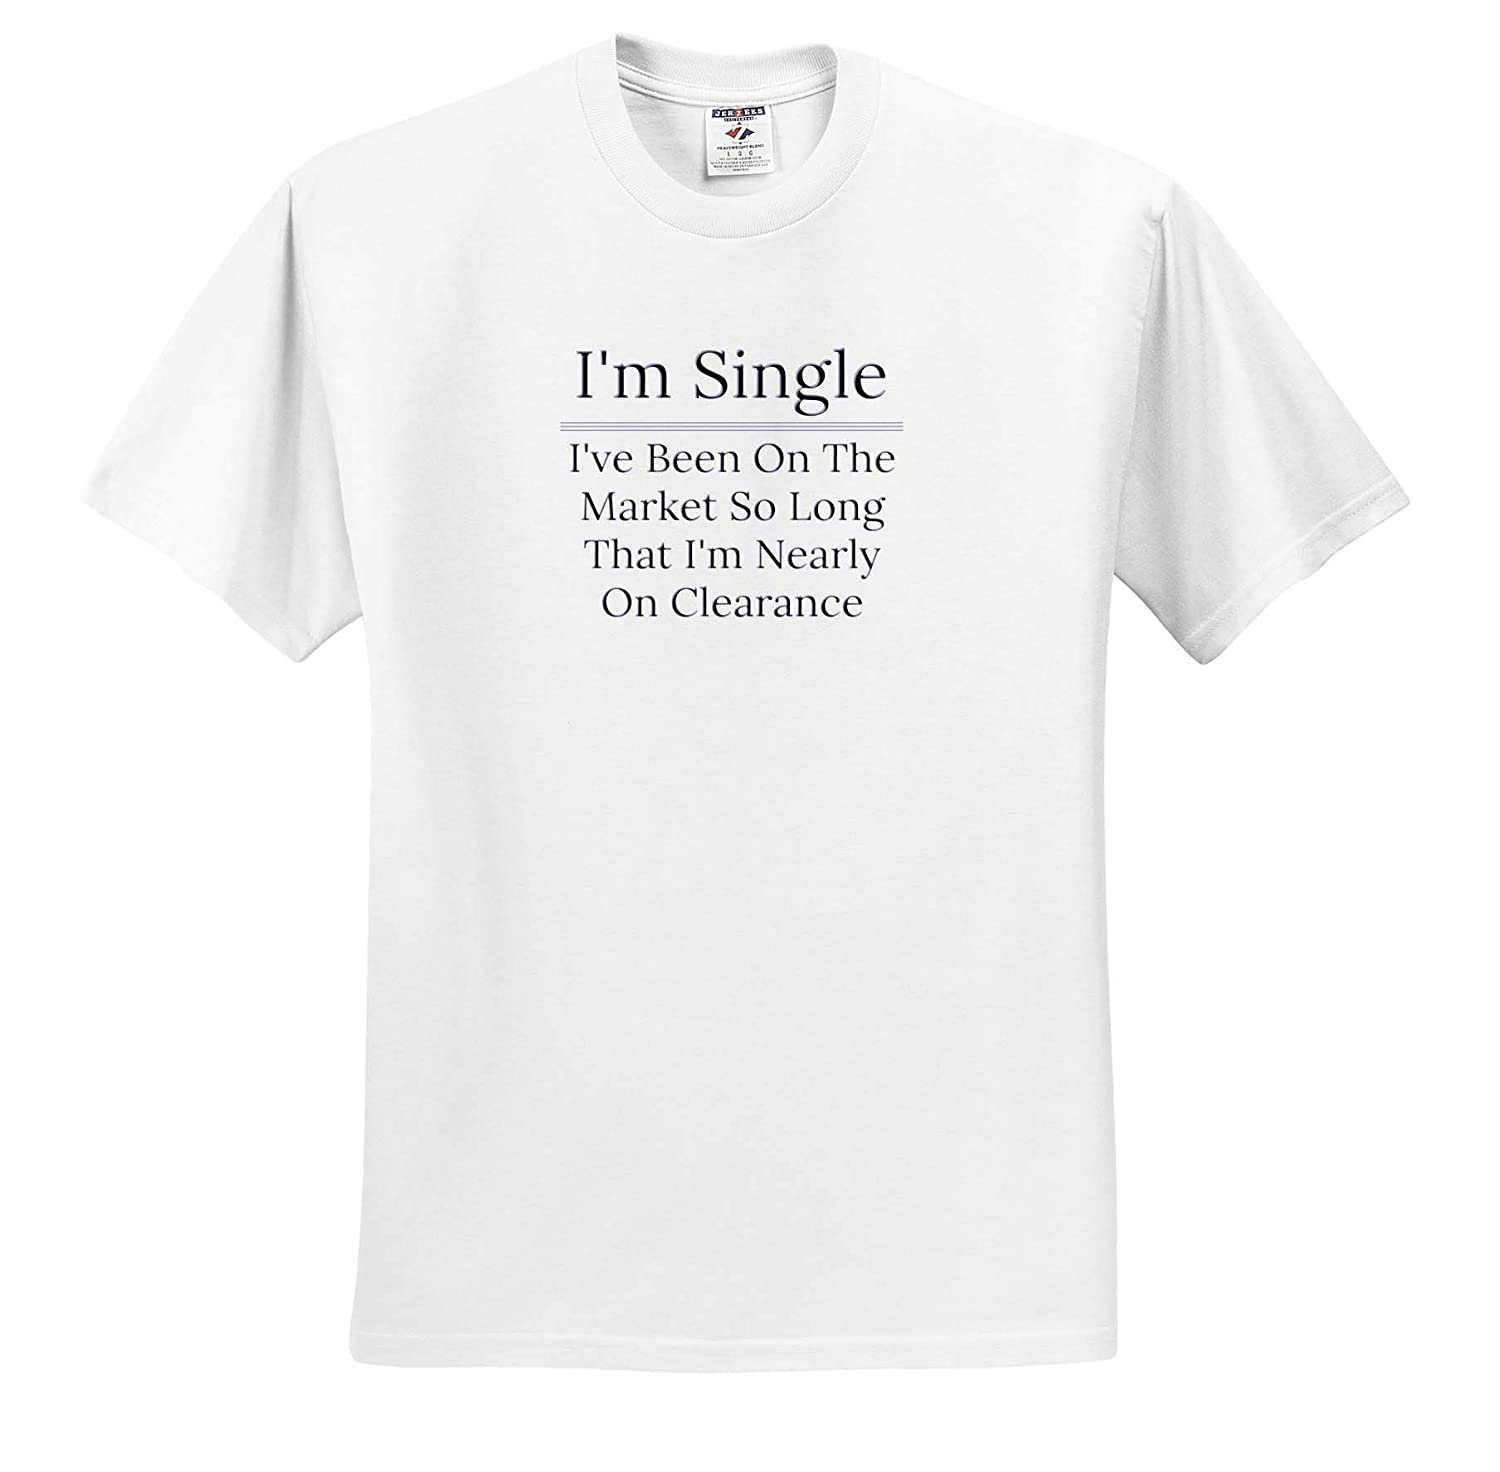 ts/_316688 Image of Im Single On The Market So Long Im On Cleacrance 3dRose Carrie Merchant Image Adult T-Shirt XL